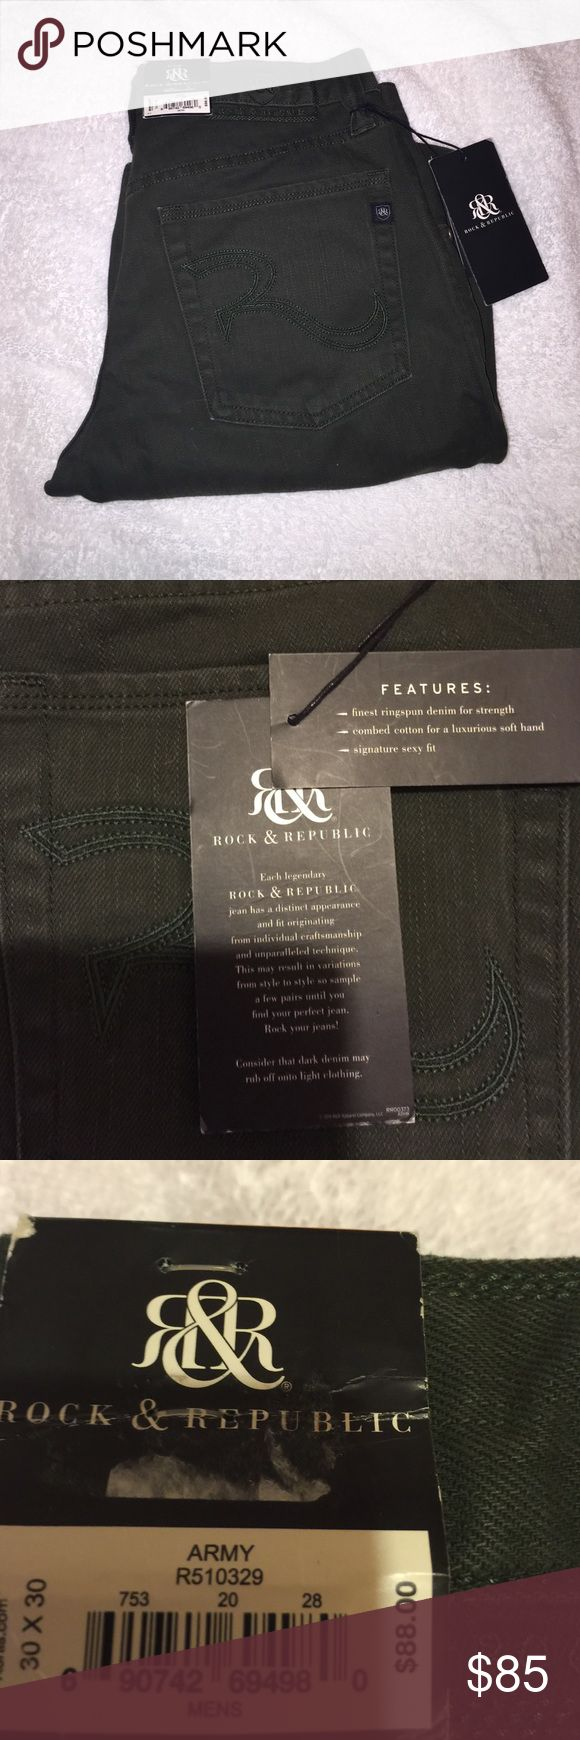 NWT R&R army green denim jeans 30X30 men's jeans. I didn't realize these were misplaced in the wrong dept. until I brought them home and didn't decide to wear months later. Retail $88. Need these out. Plz don't ask to model cuz these r men's n don't fit me well front curvy hip area. These are slim straight as stated on tags. Rock & Republic Jeans Straight Leg